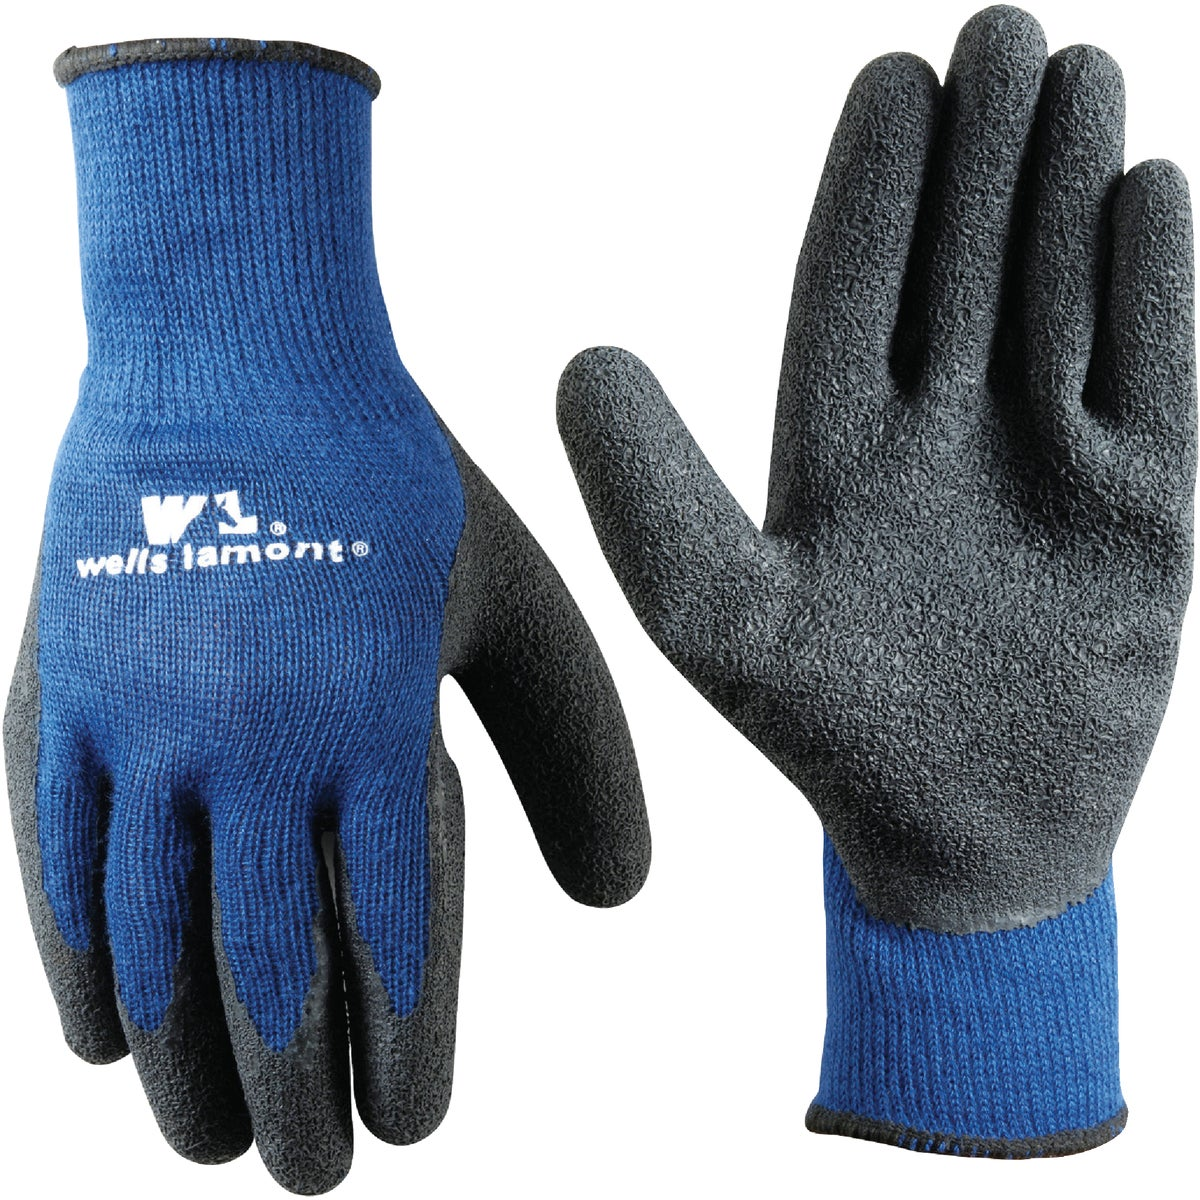 XL LATEX COATED GLOVE - 524XL by Wells Lamont